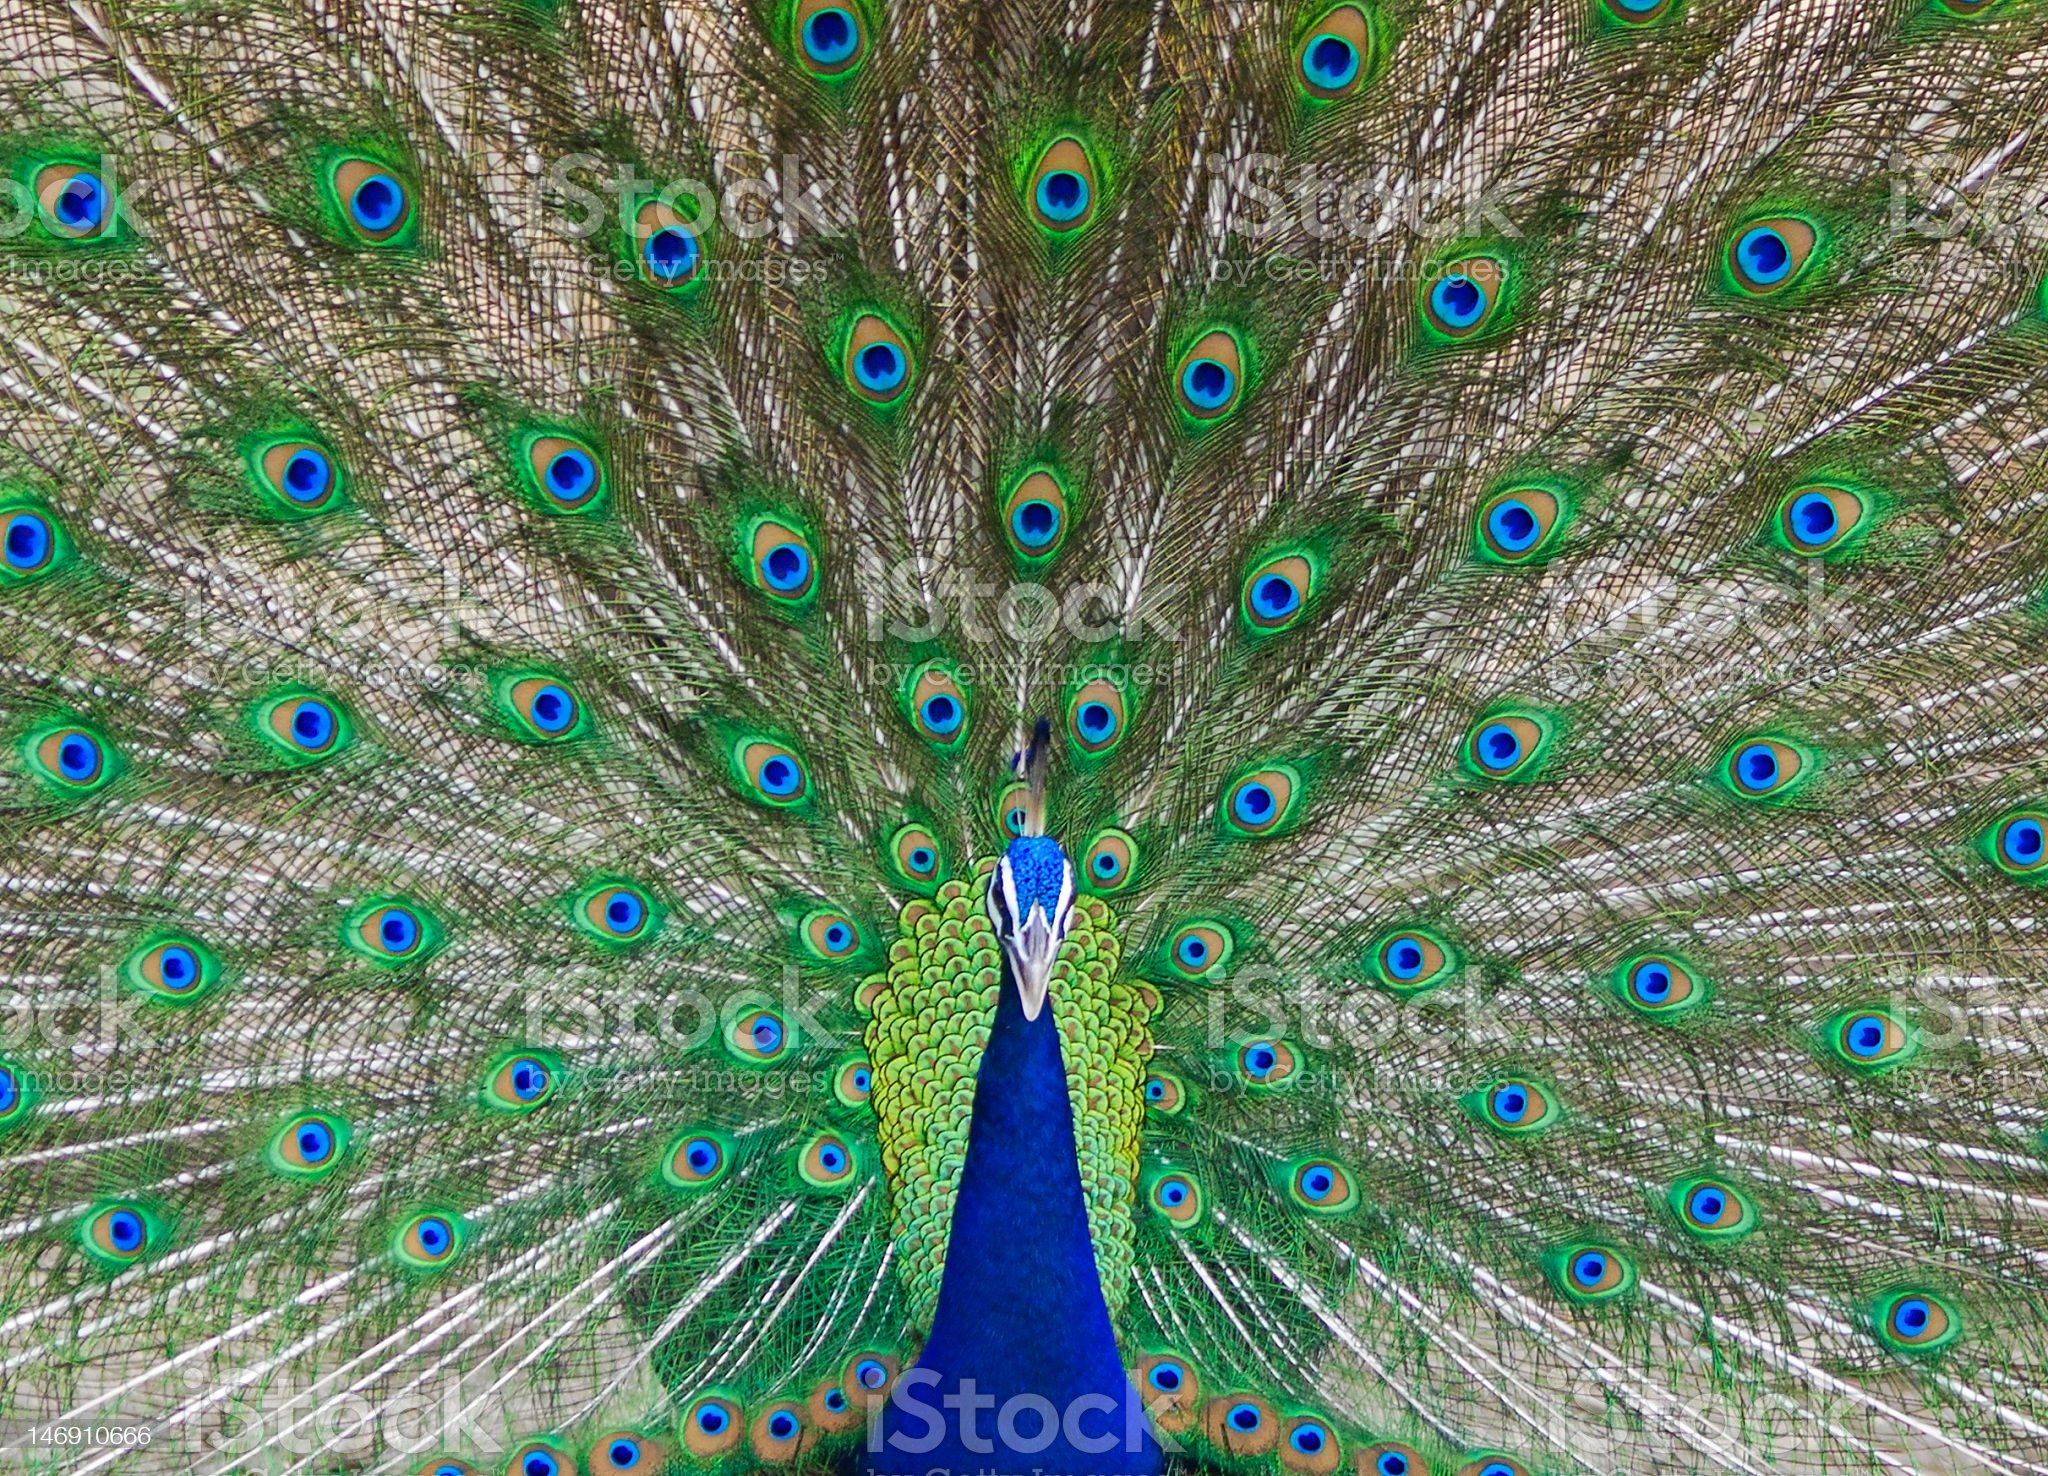 Close-up photograph of an Indian Peacock dancing royalty-free stock photo